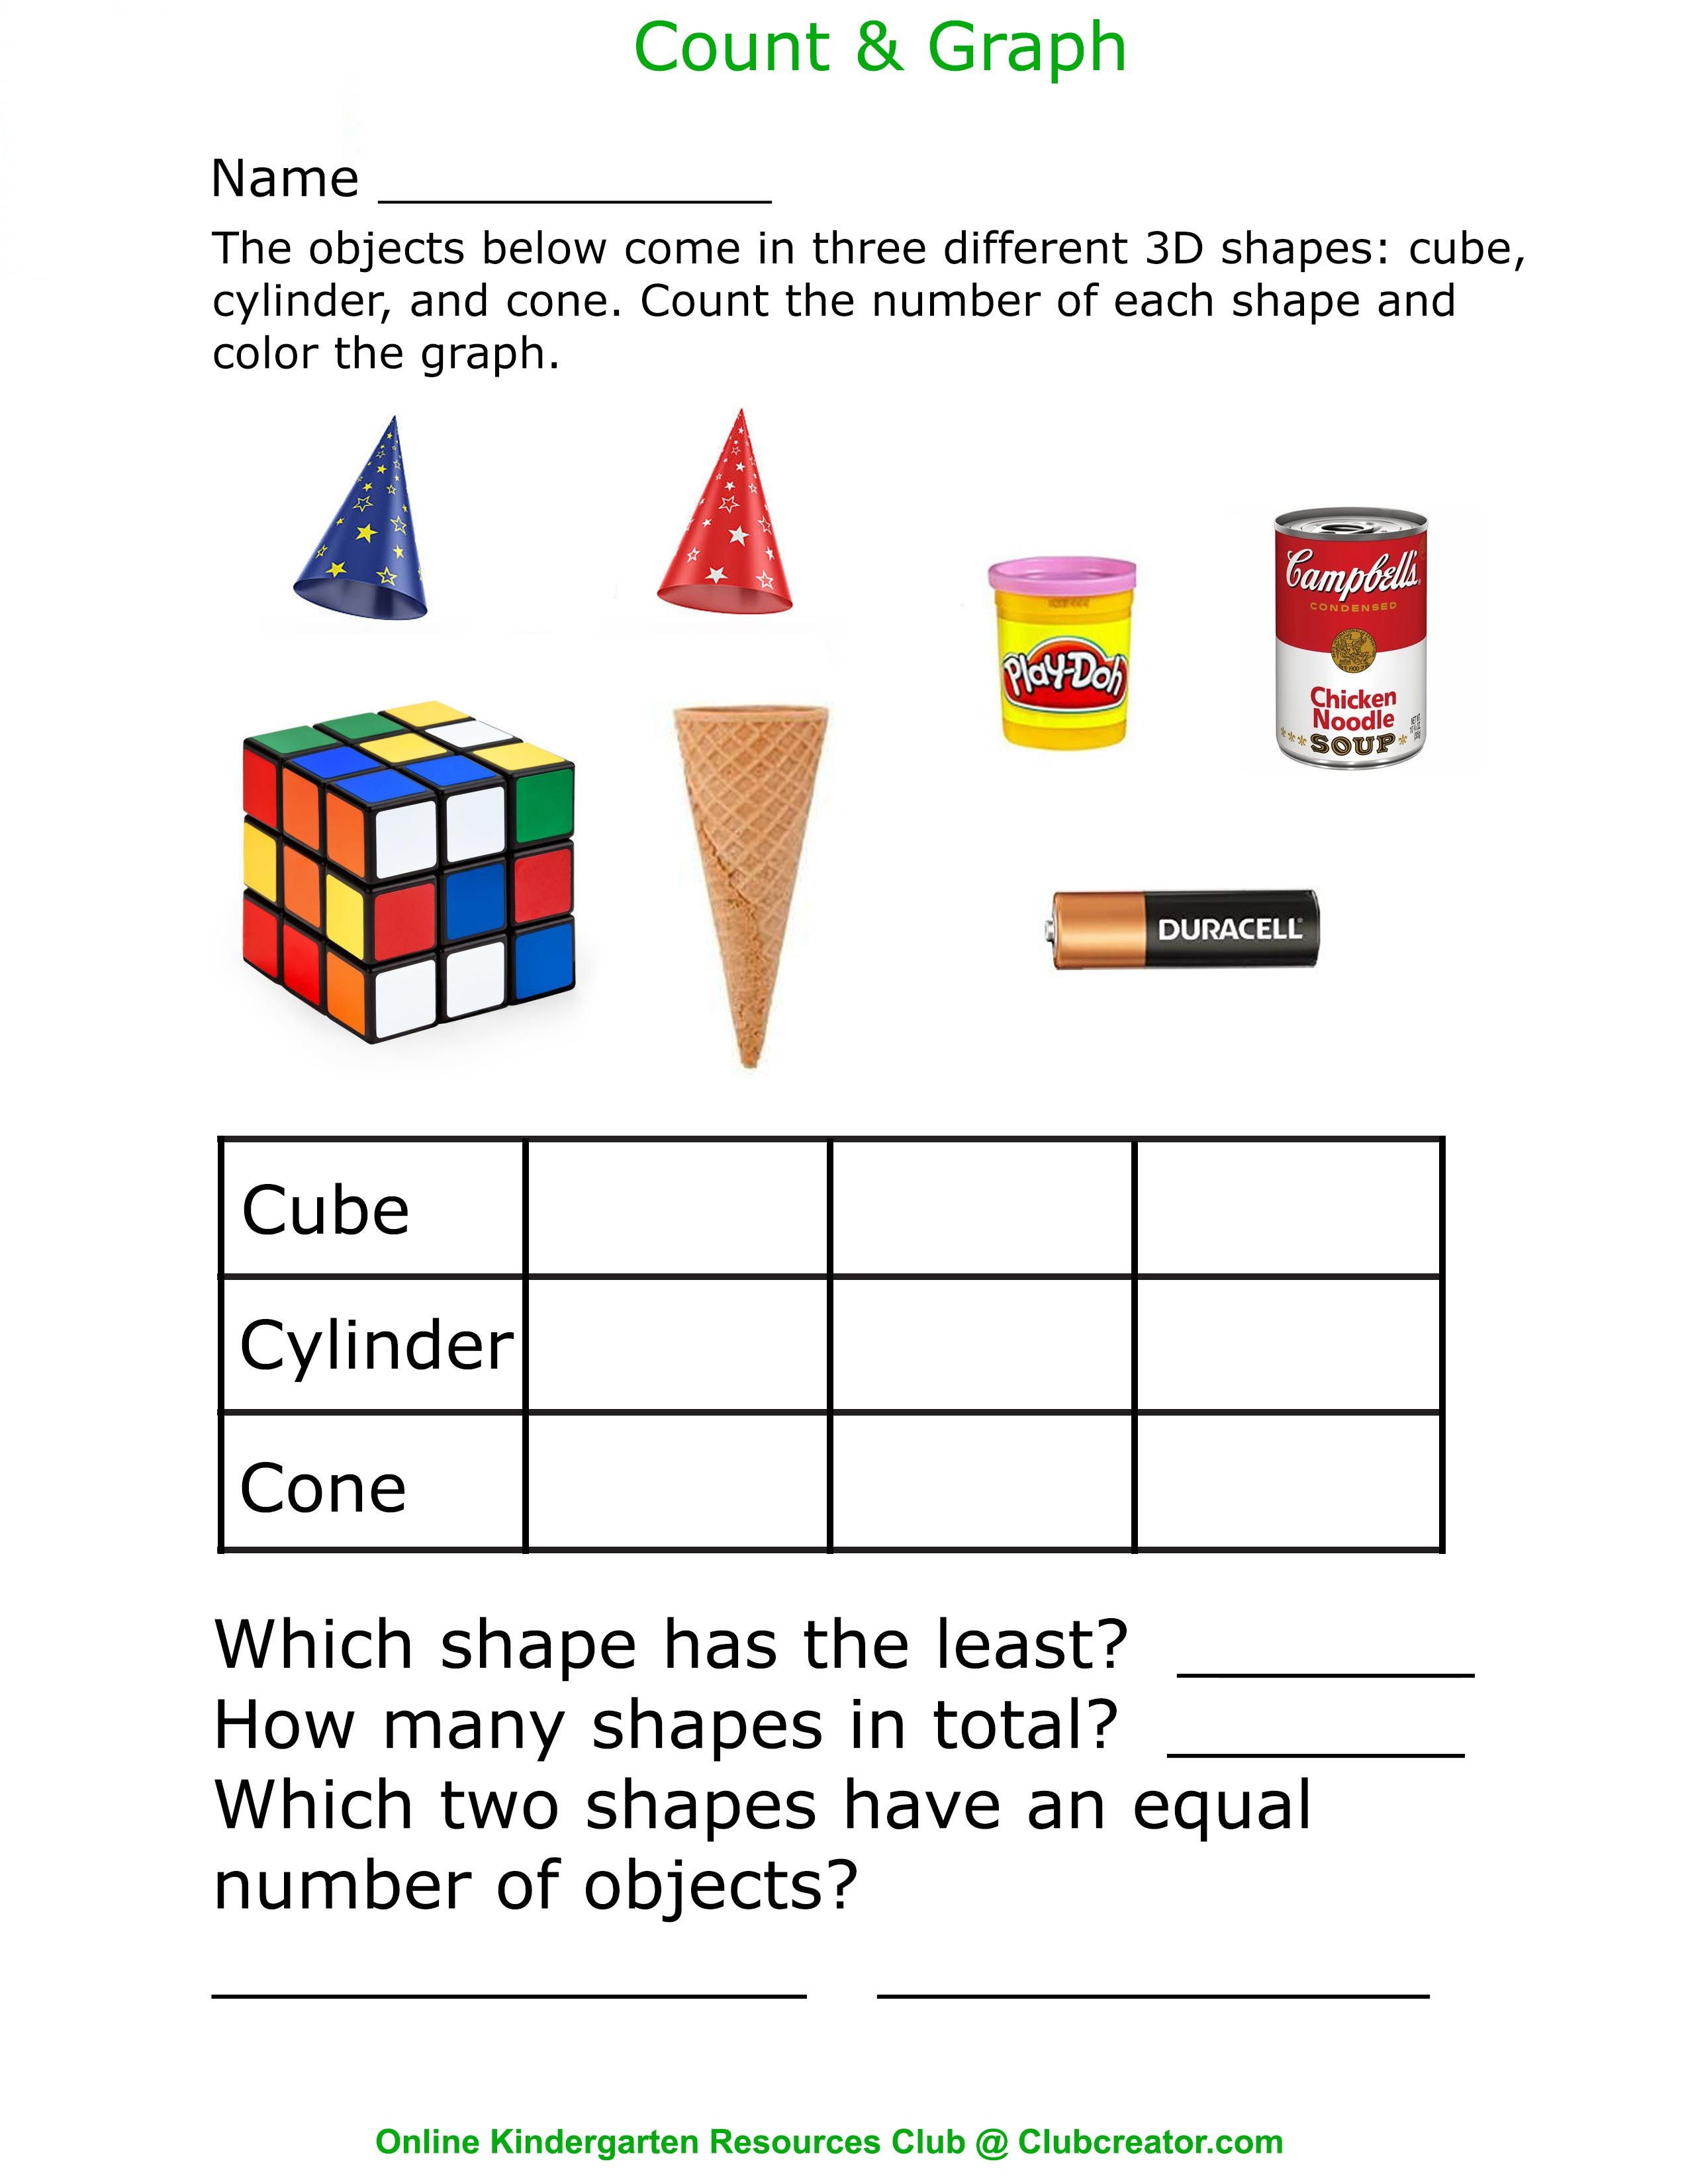 3d Shapes In Real Life Homeschool Worksheets Kindergarten Math Worksheets Online Kindergarten [ 3300 x 2550 Pixel ]